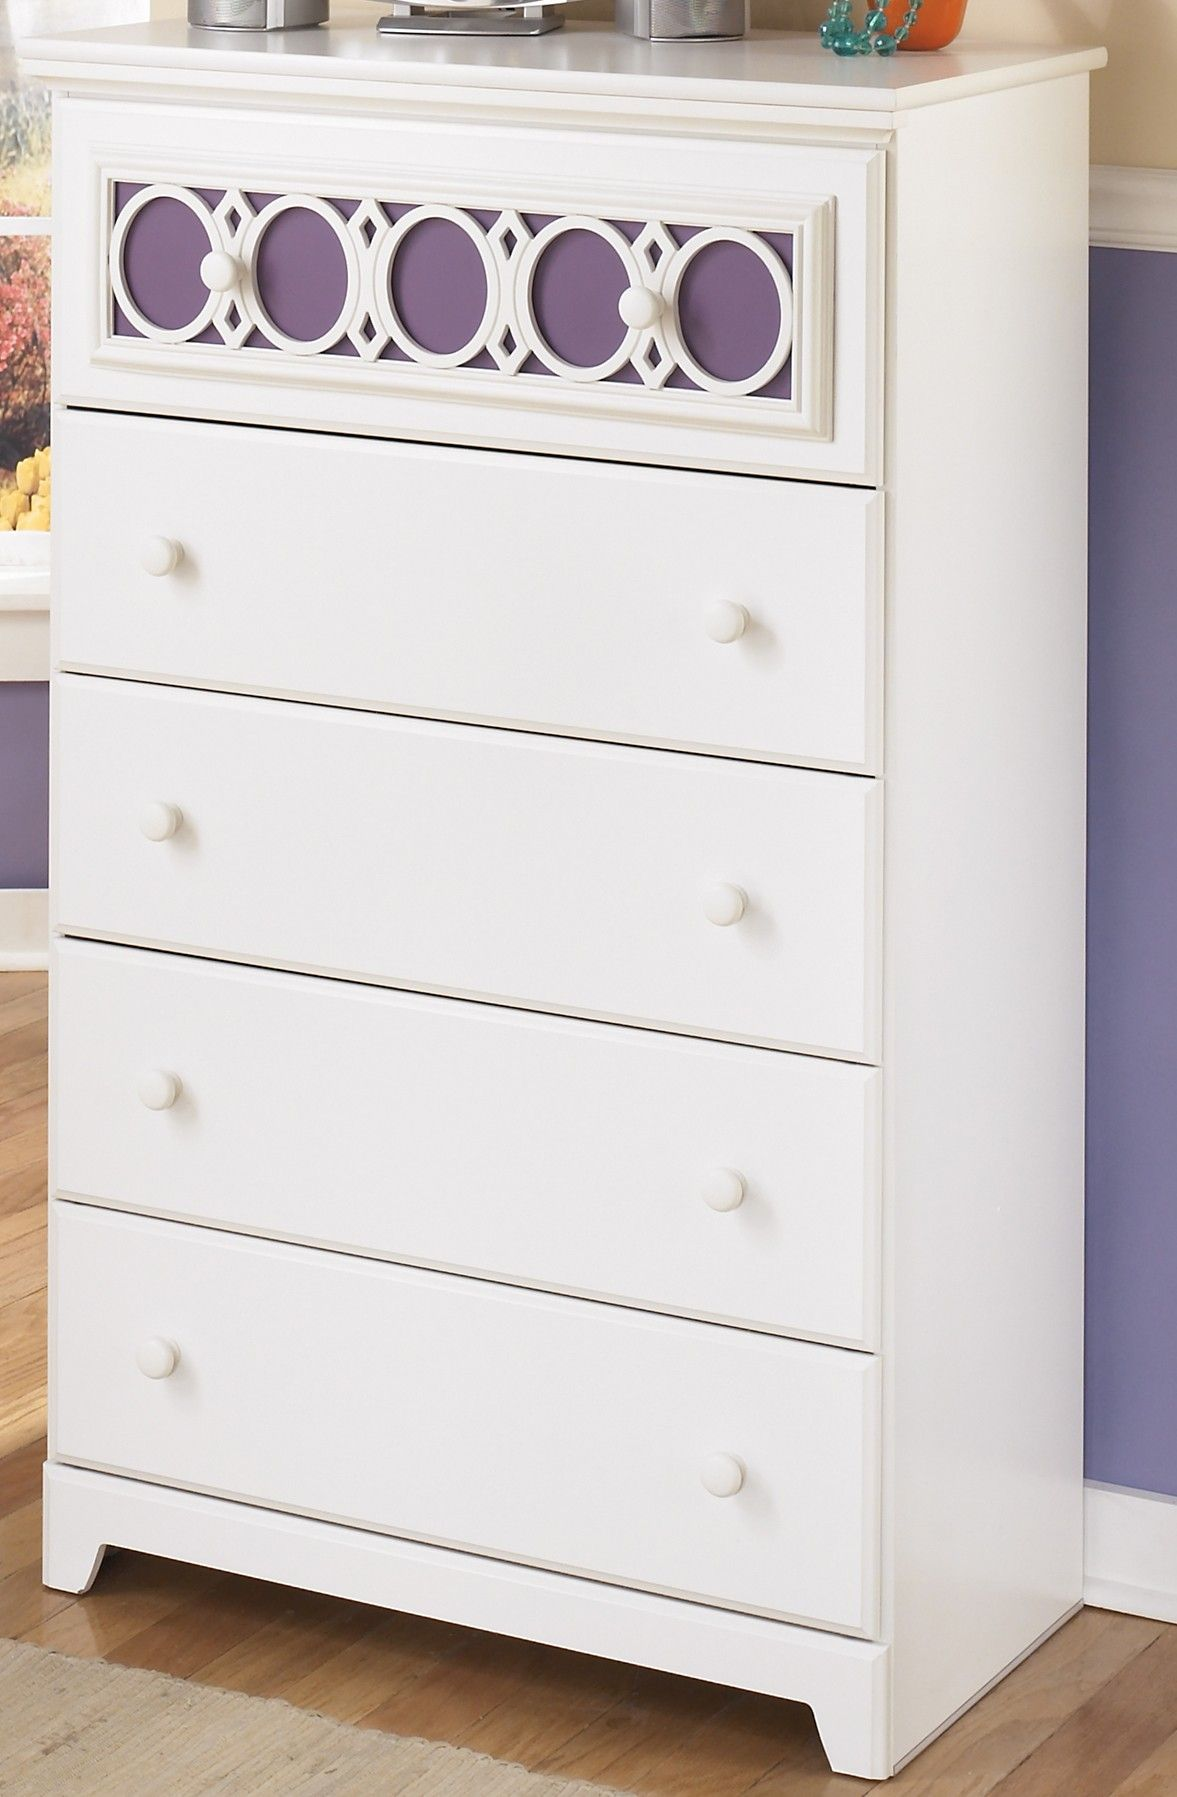 ashley home dresser design signature overstock today product drawer zayley white by chest free sb shipping garden